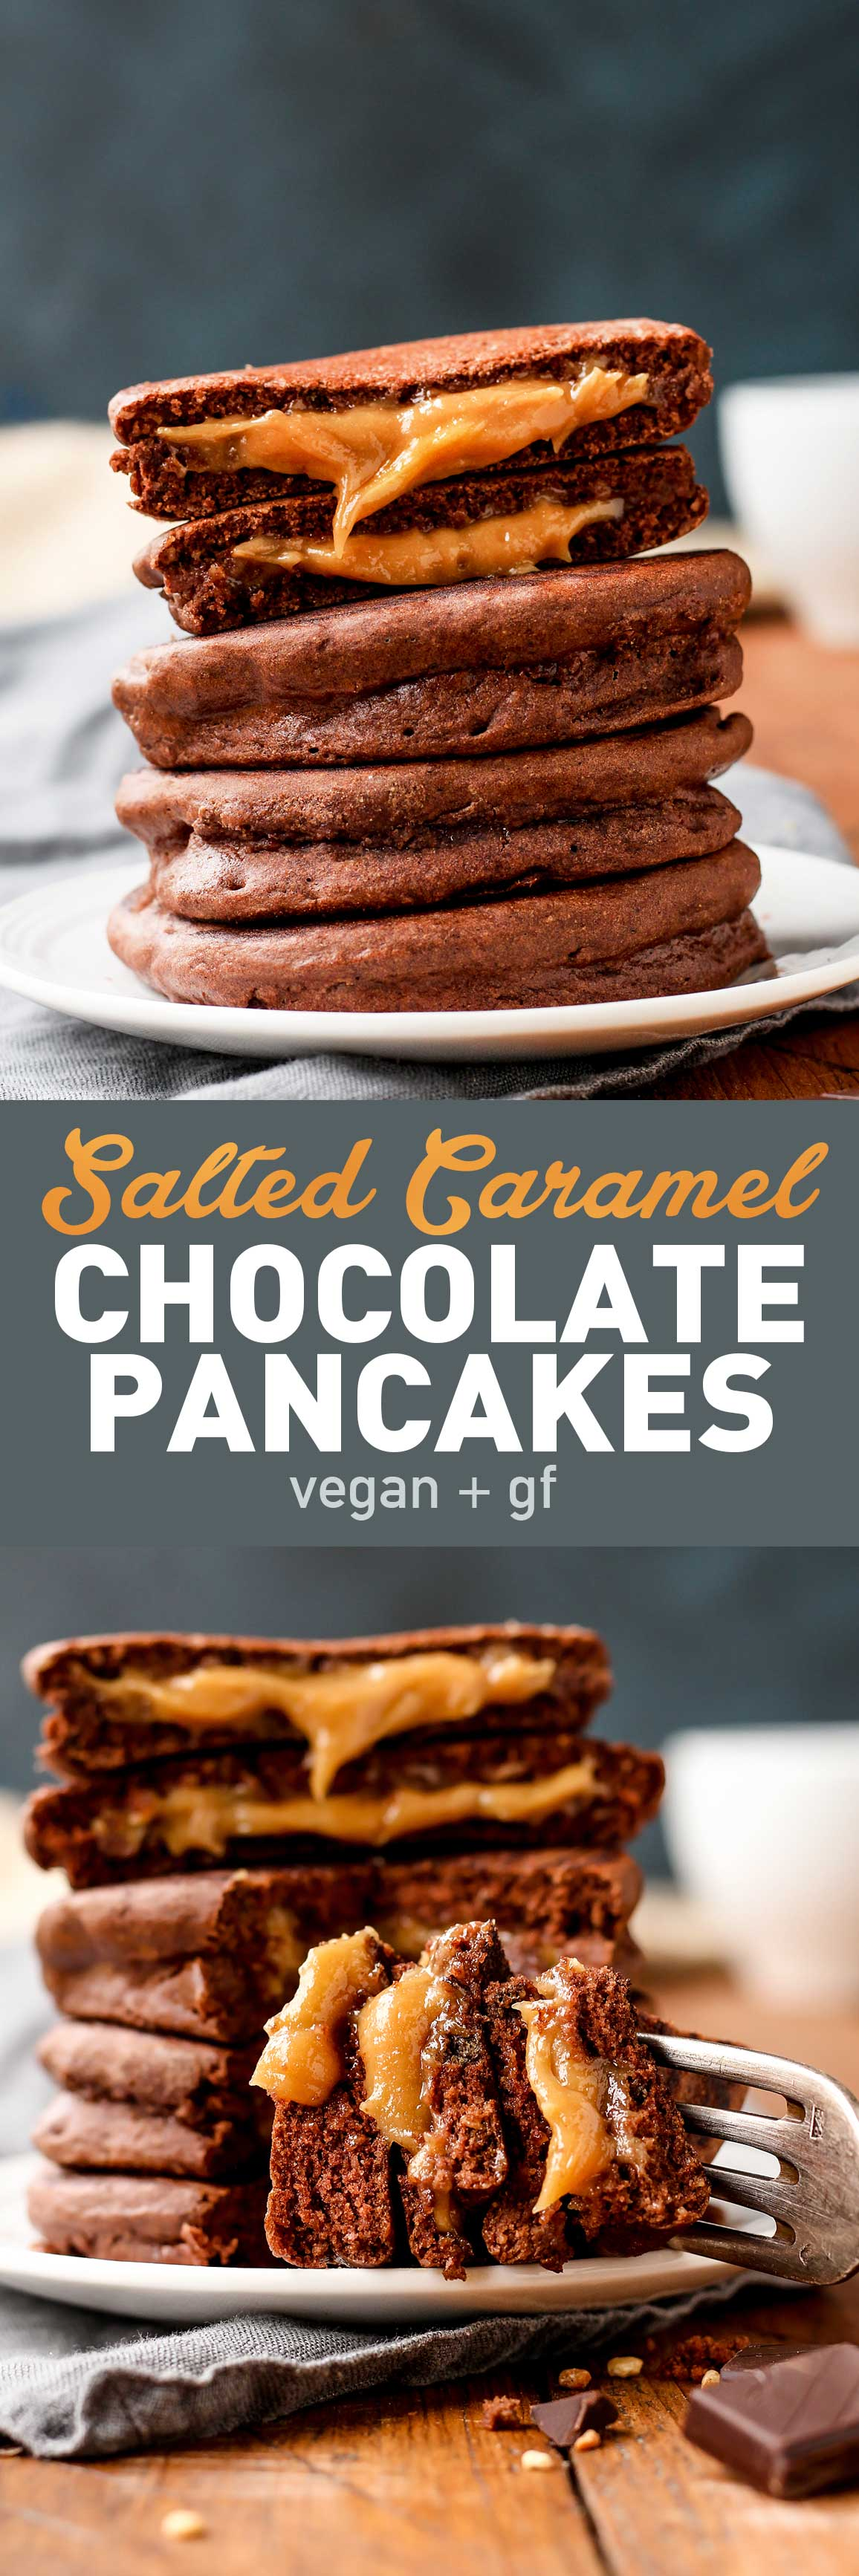 Salted Caramel Chocolate Pancakes